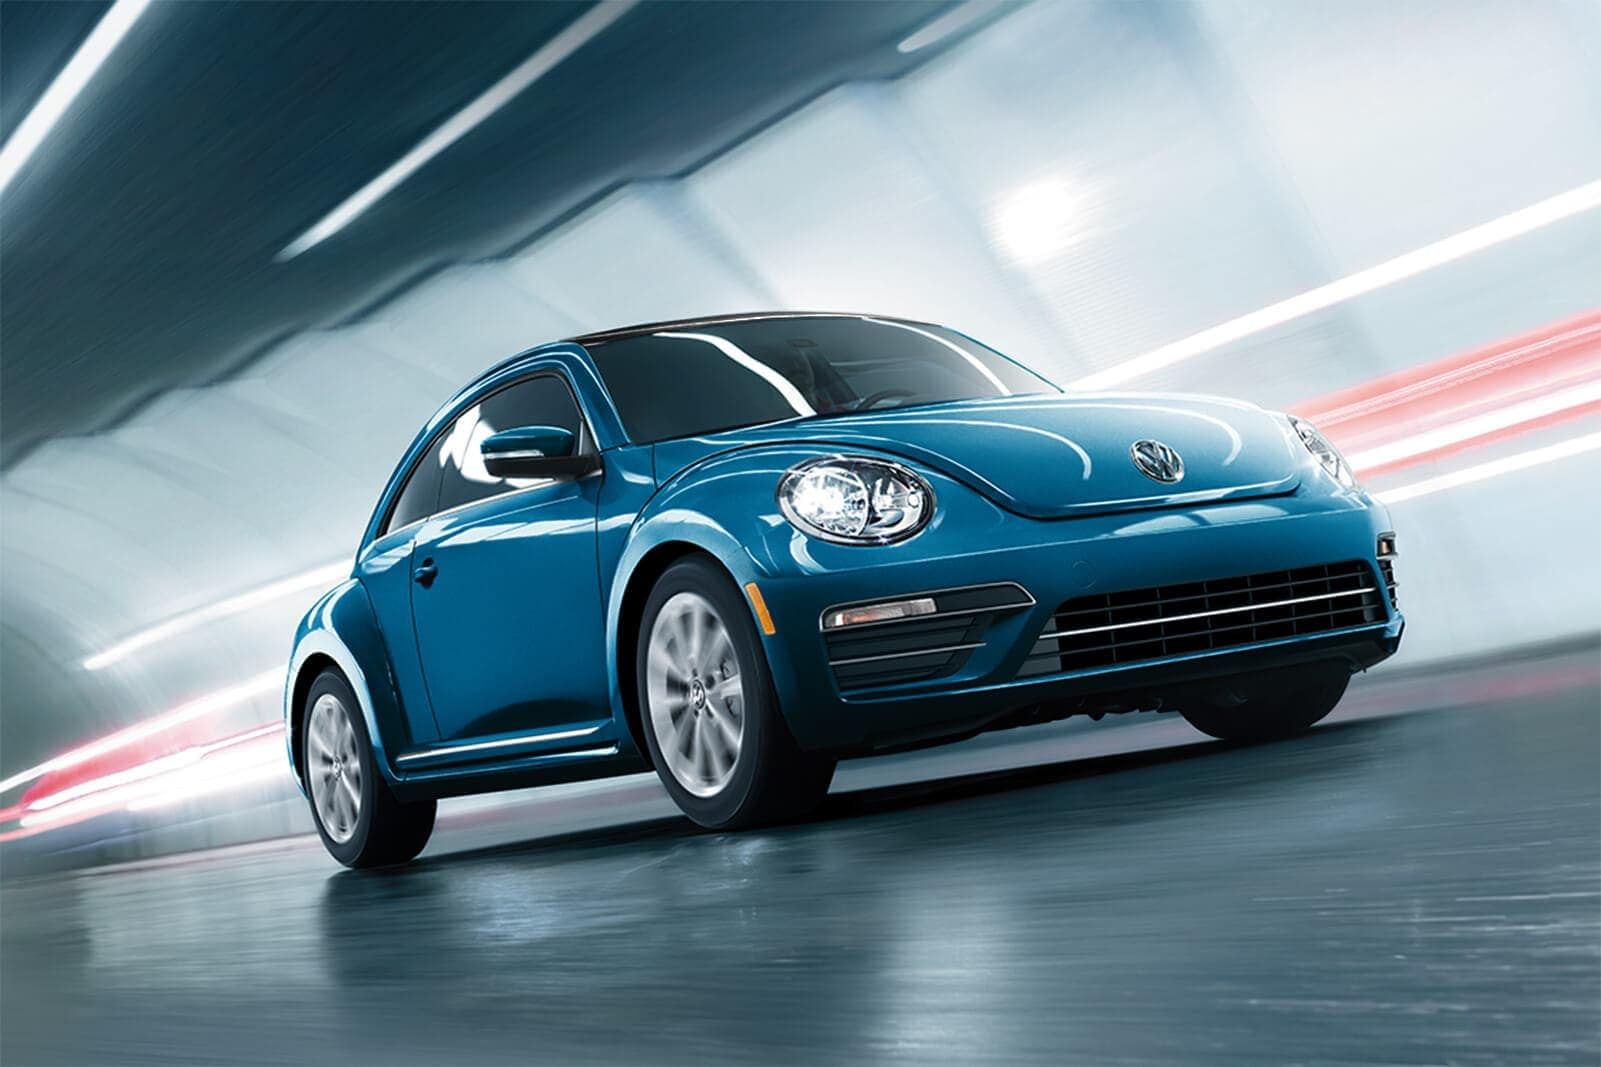 2019 Volkswagen Beetle final edition in blue driving down the road